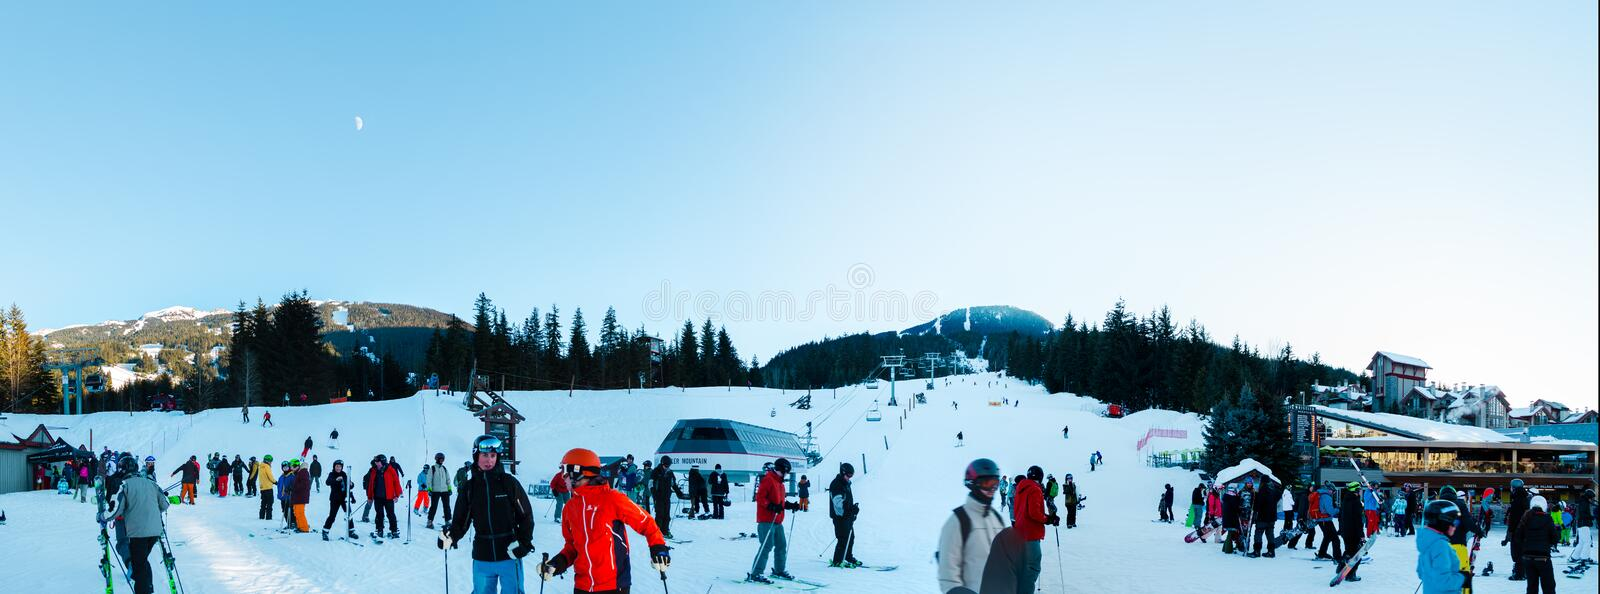 WHISTLER, BC, CANADA - JAN 14, 2019: A view of skiers coming down the hill as seen from Whistler village. stock images